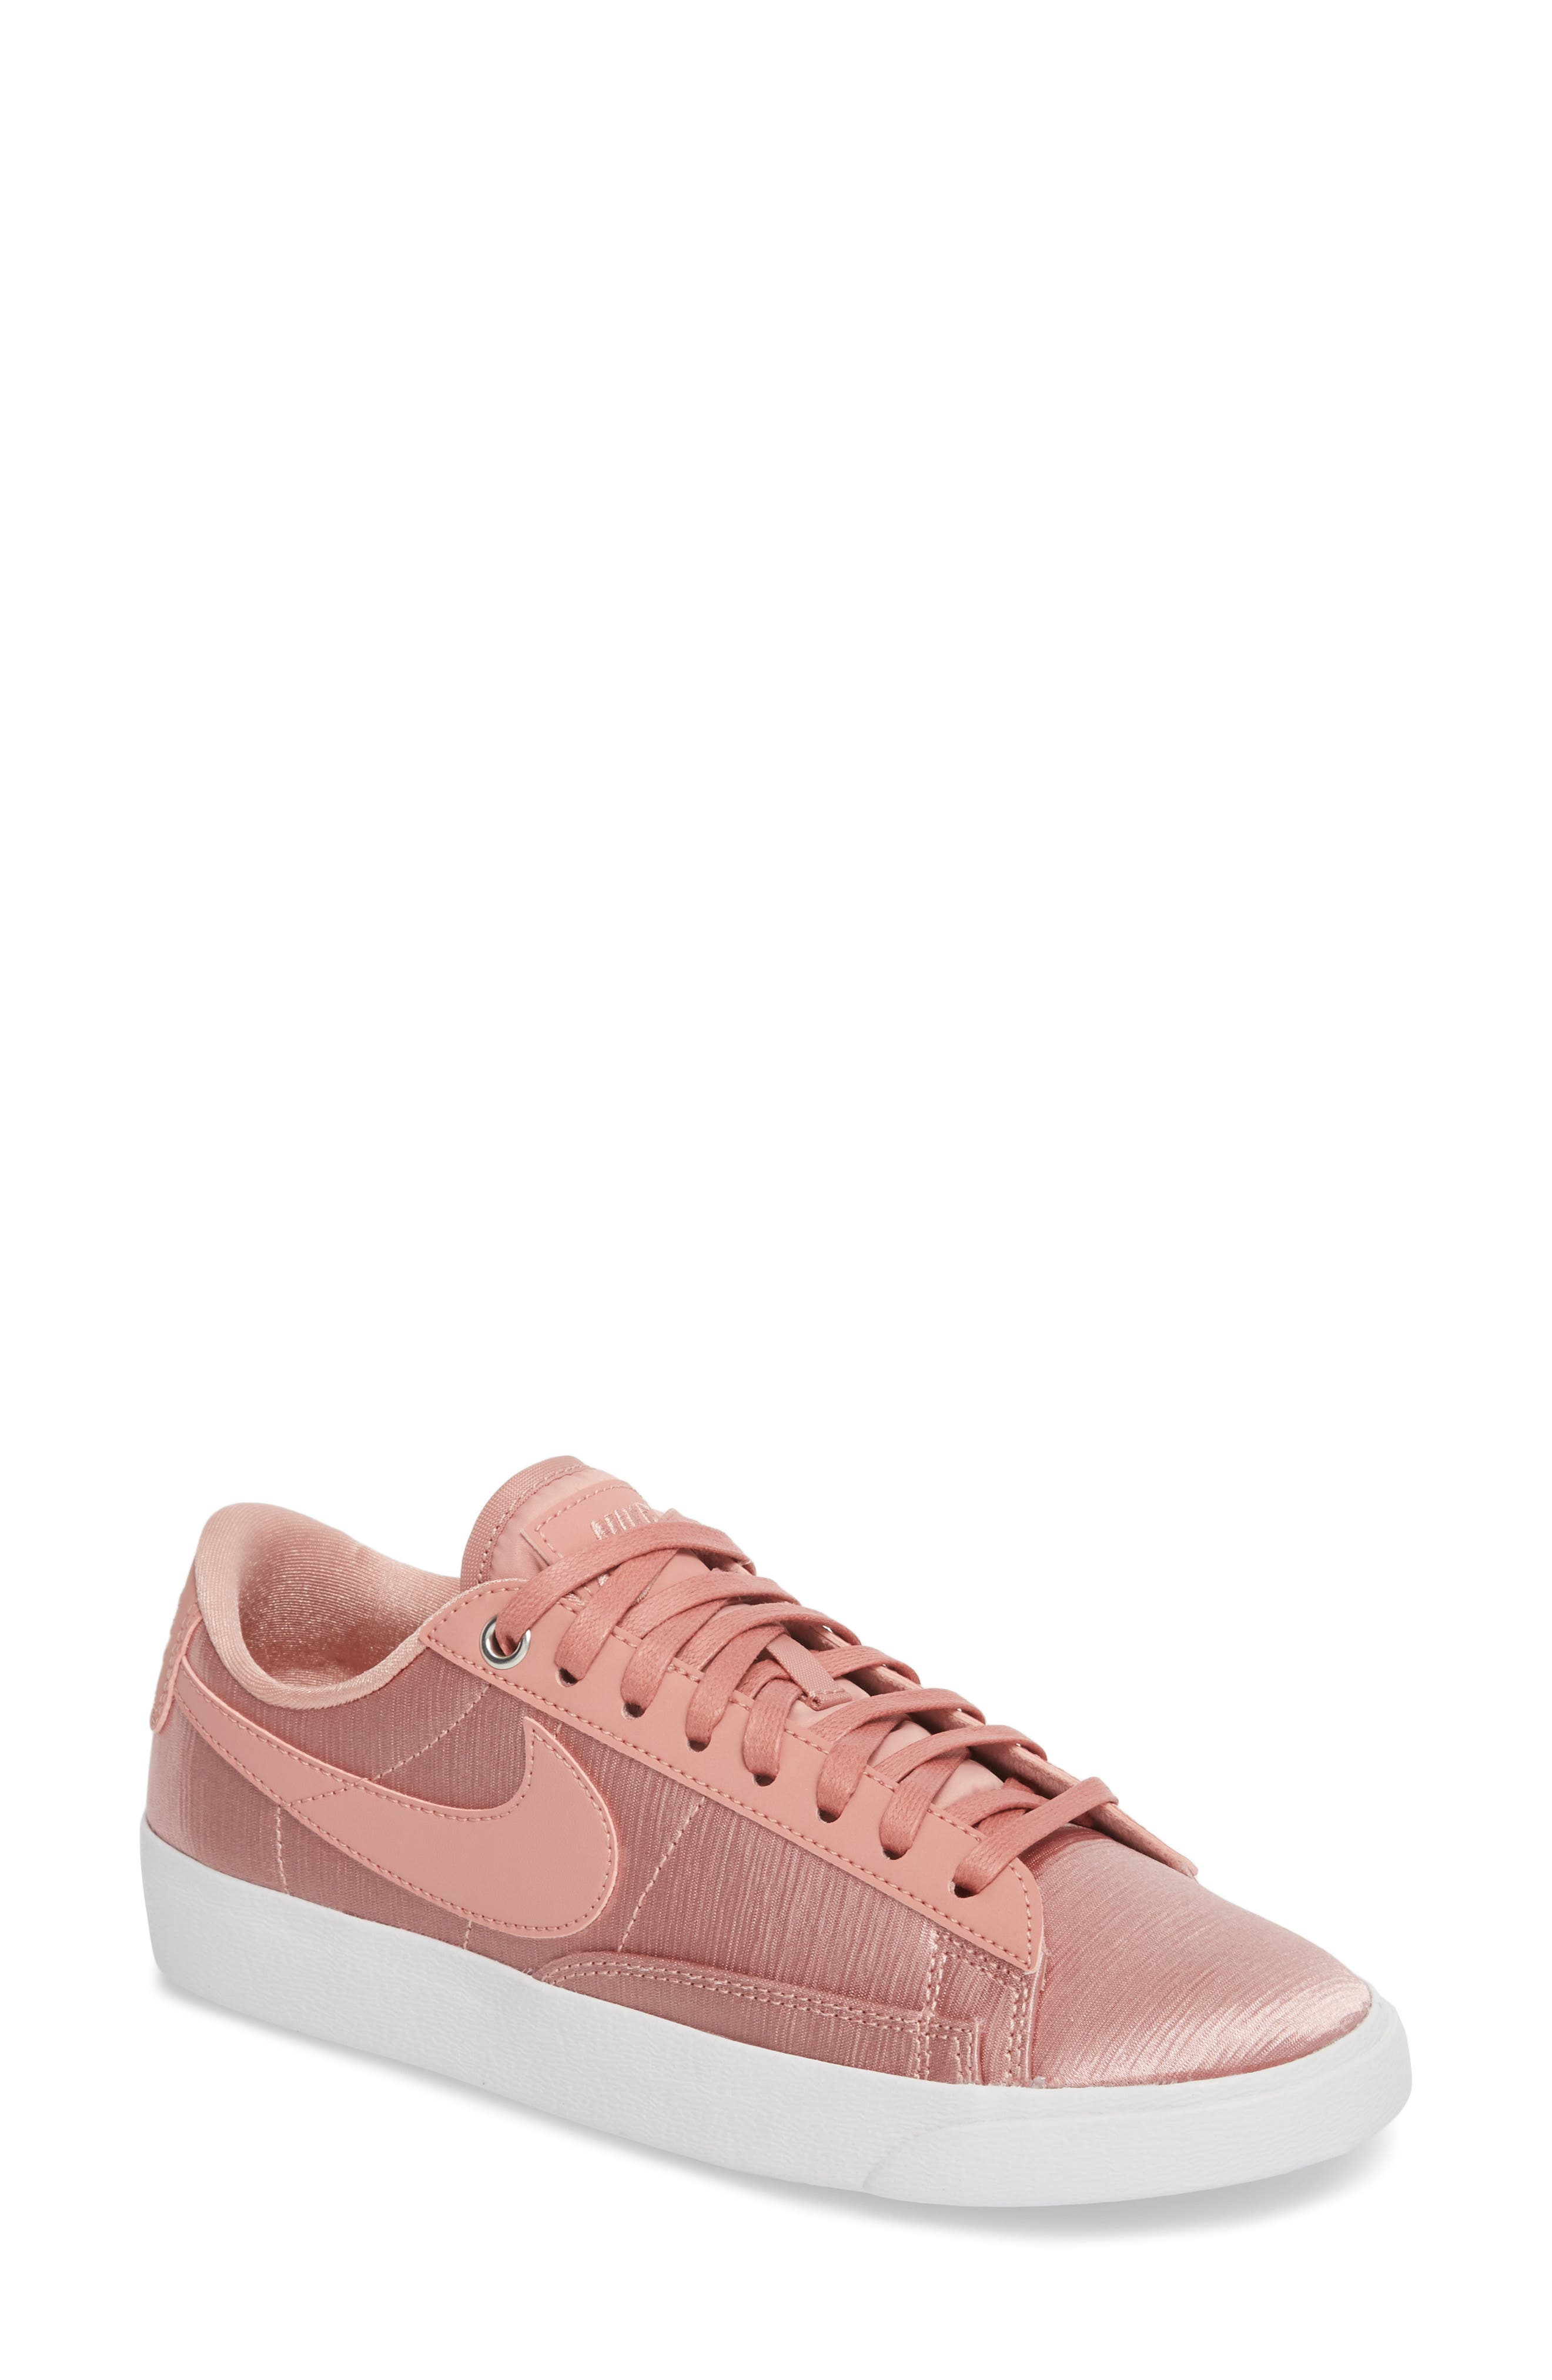 Blazer Low SE Sneaker,                             Main thumbnail 1, color,                             Rust Pink/ Rust Pink